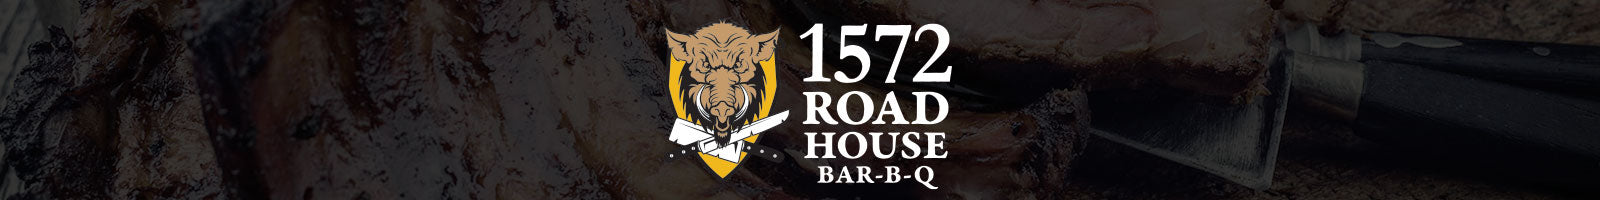 1572 Roadhouse Bar-B-Q